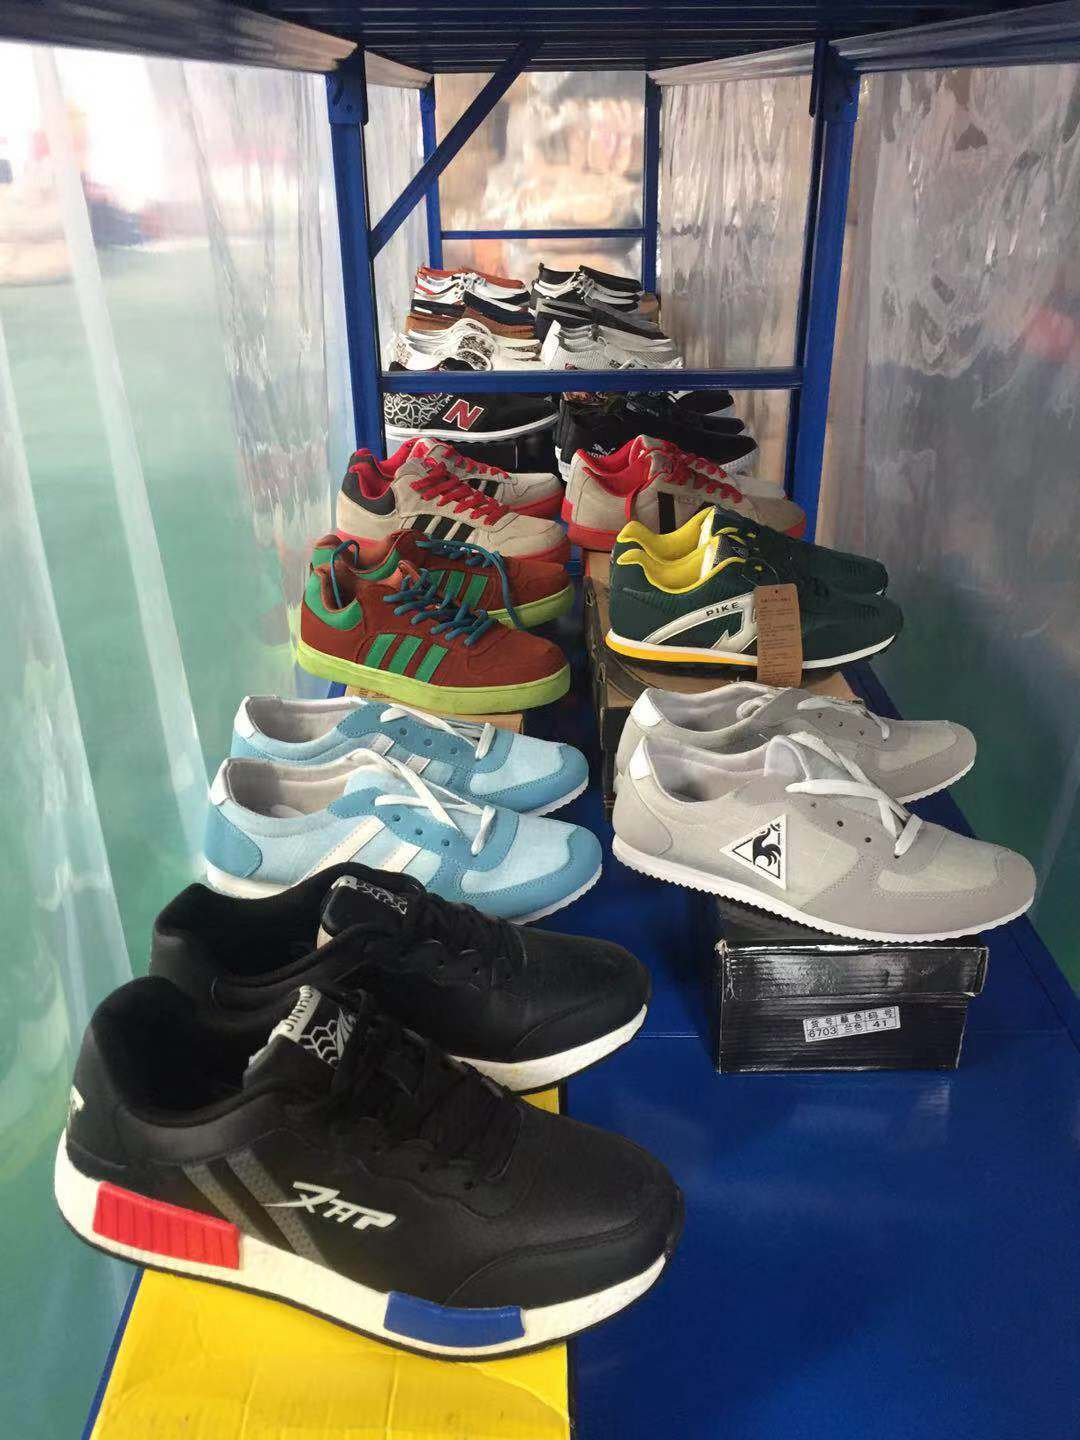 Very Cheap Stocks Shoes From China